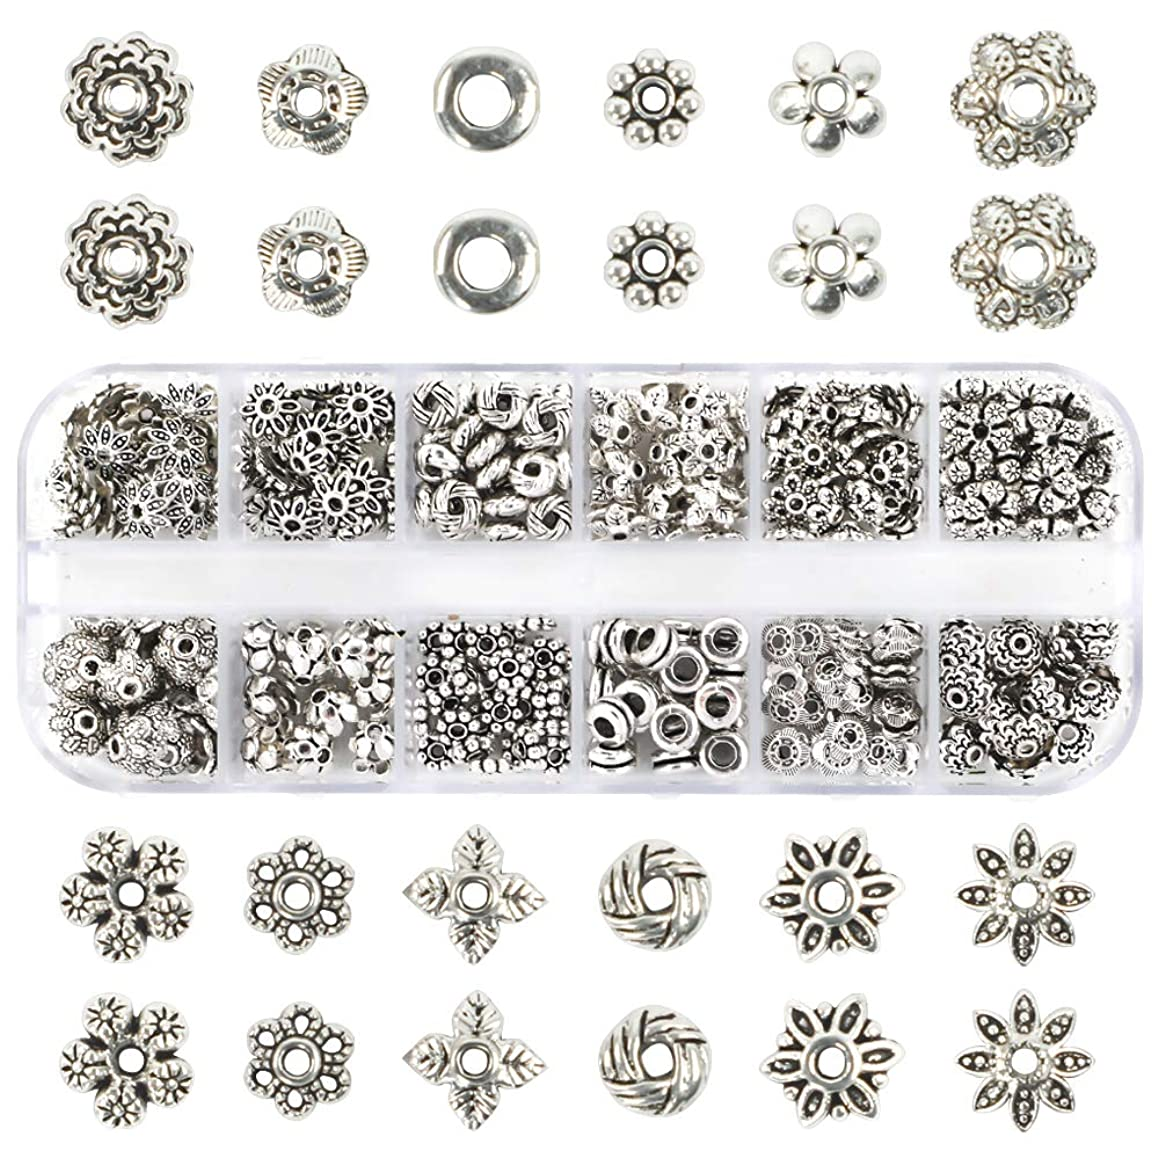 Quefe 360pcs Silver Spacer Beads of 12 Styles Jewelry Accessories for Bracelet Necklace Jewelry Making